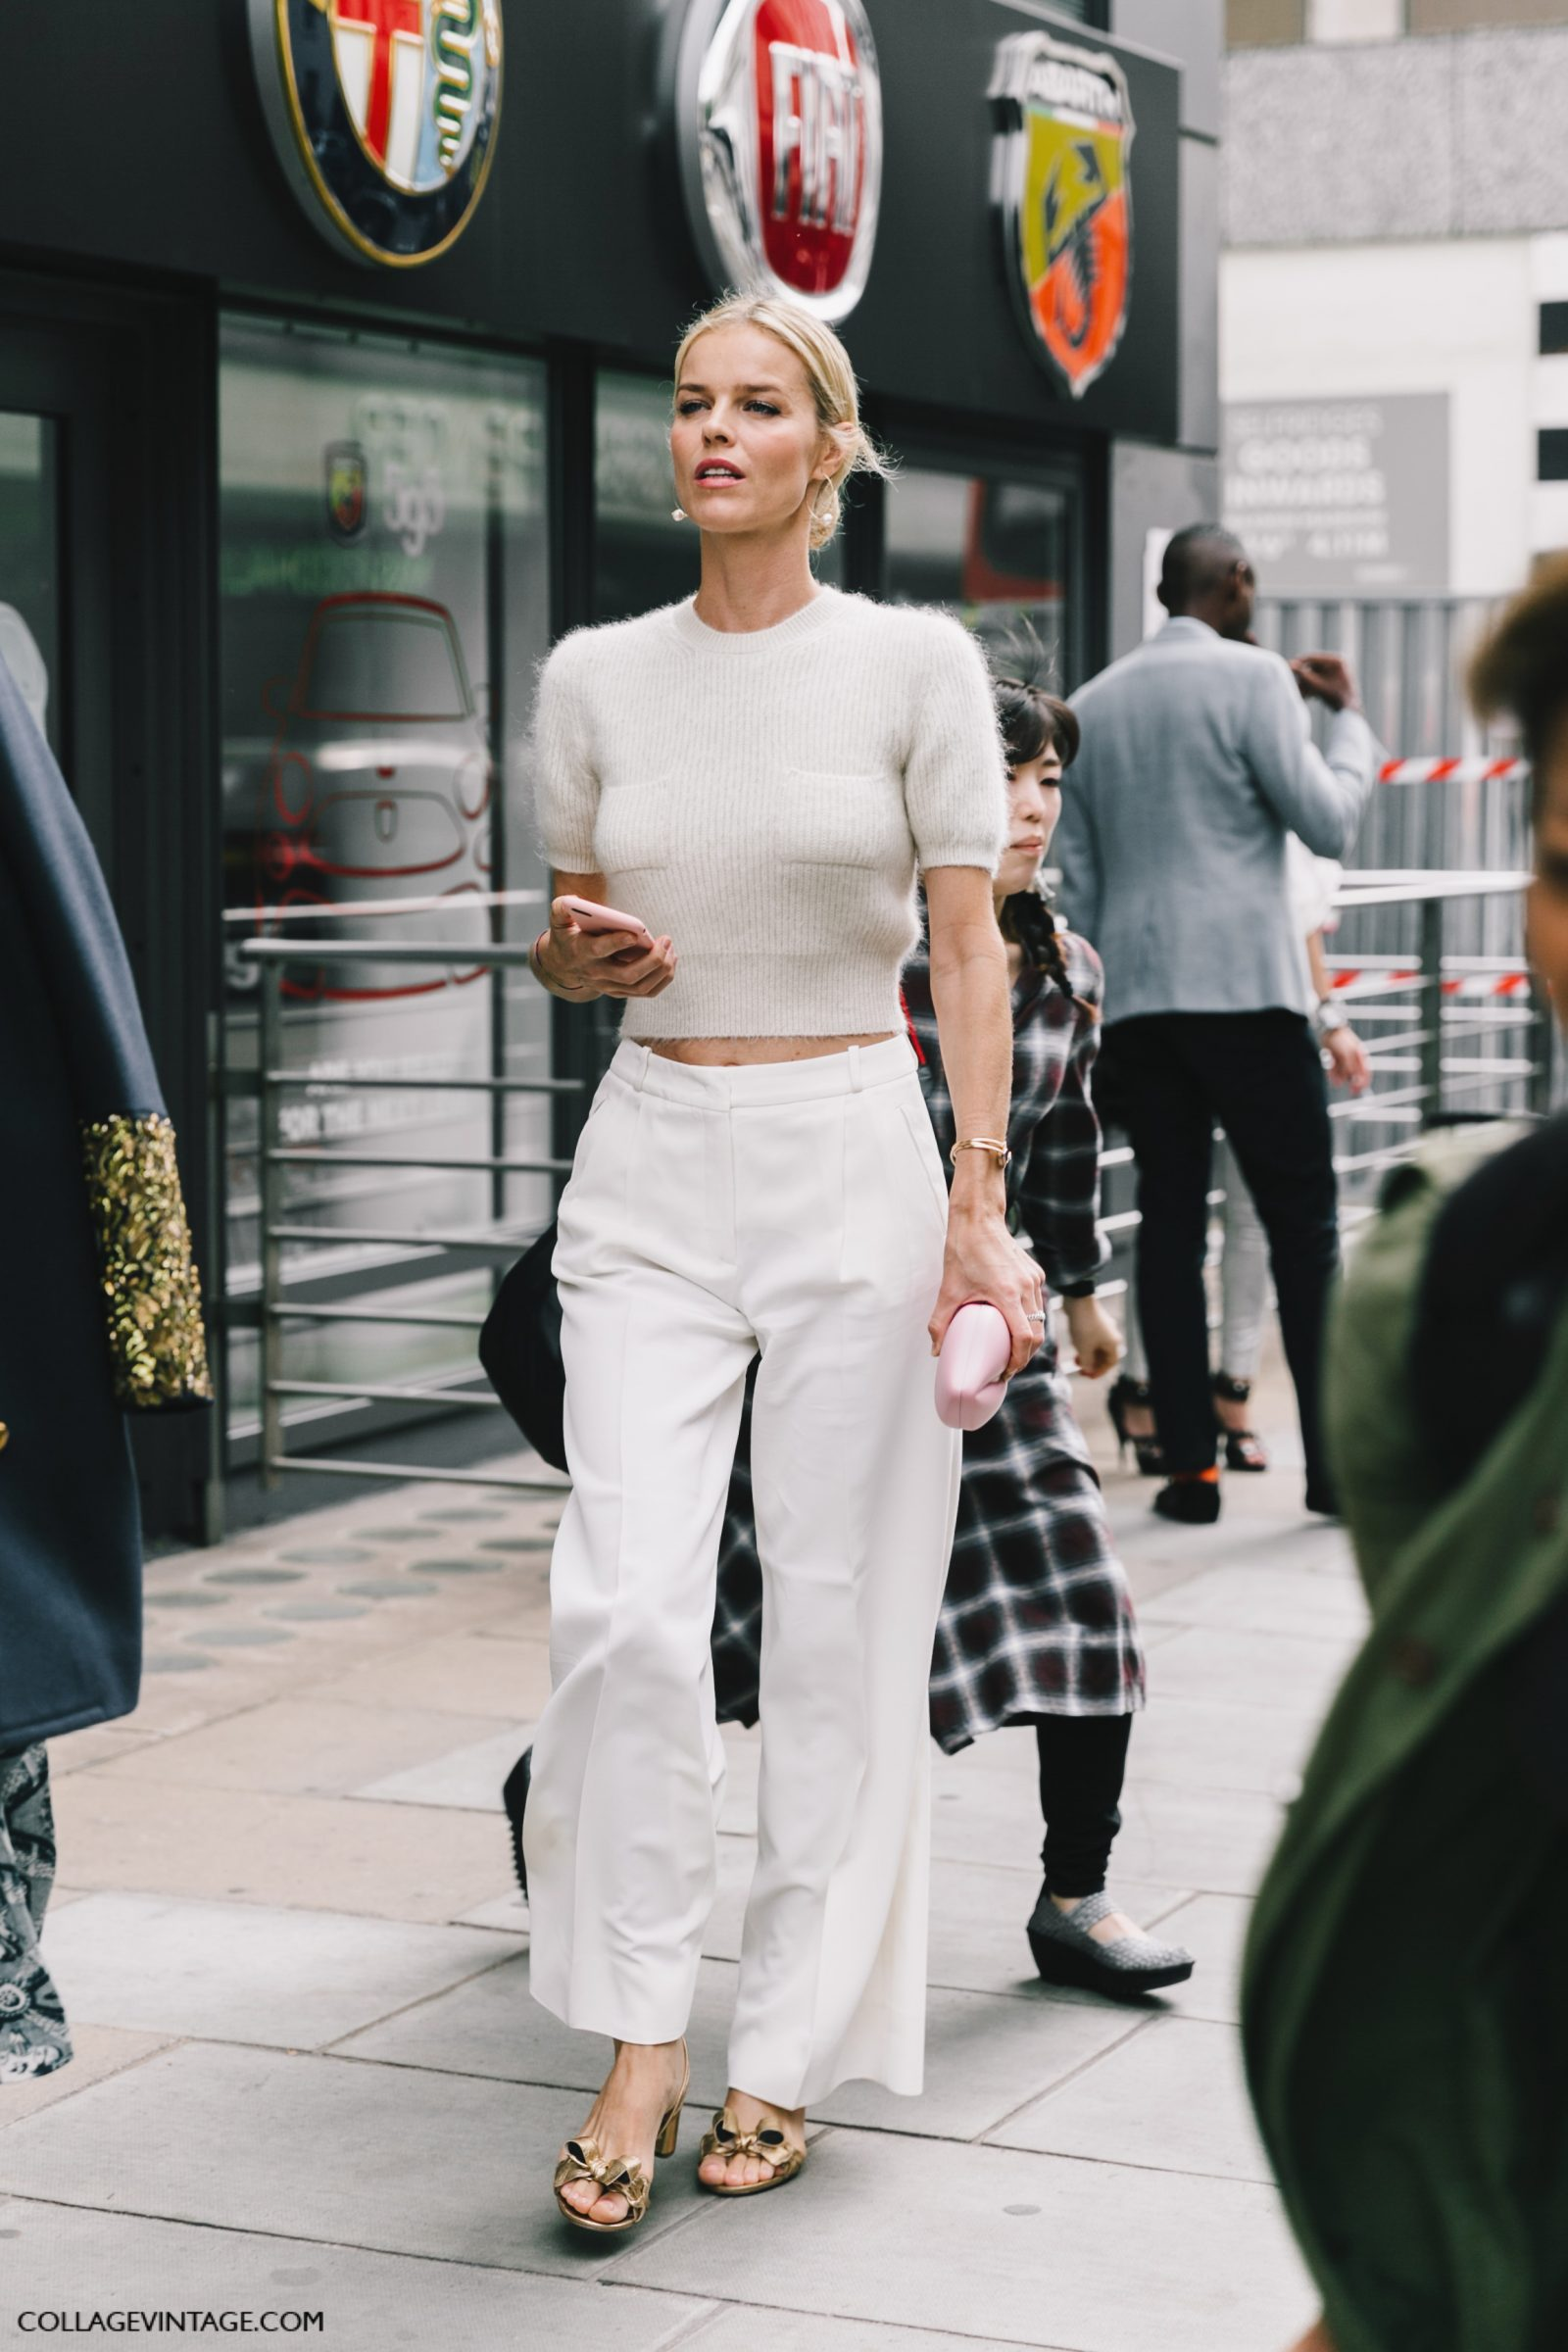 lfw-london_fashion_week_ss17-street_style-outfits-collage_vintage-vintage-roksanda-christopher_kane-joseph-32